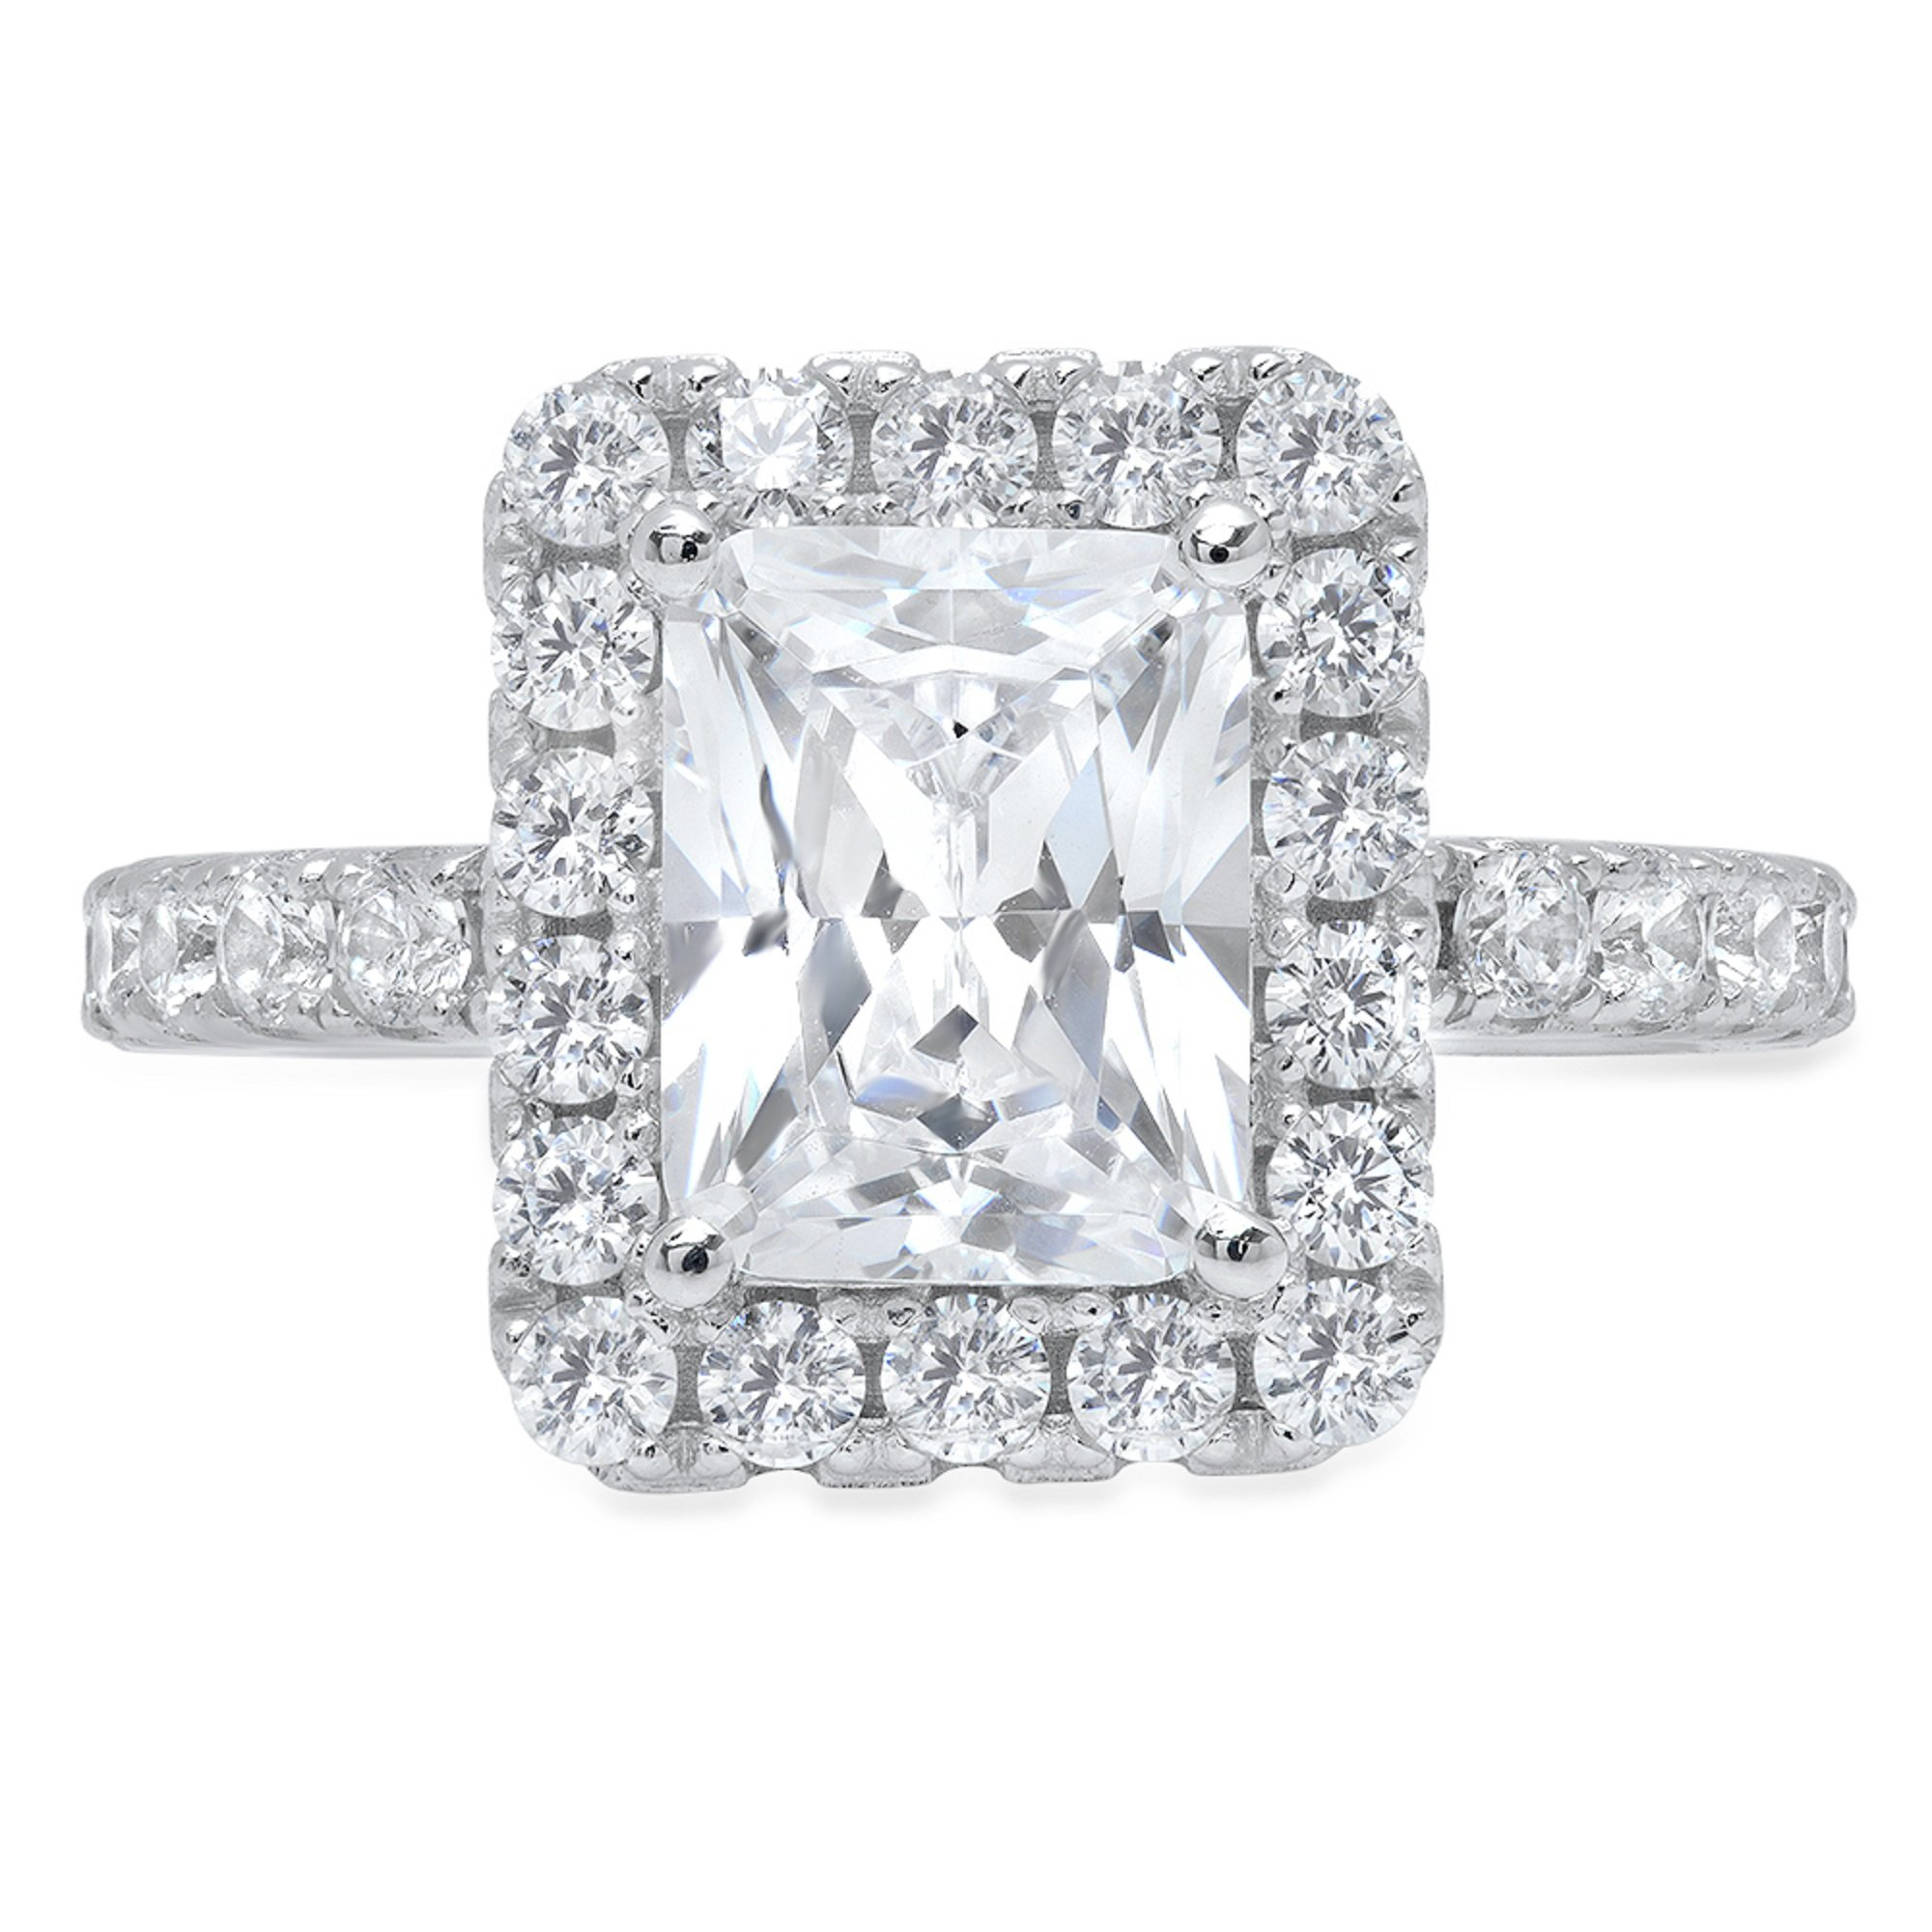 Clara Pucci 3.8ct Brilliant Emerald Round Cut Solitaire Halo Statement Wedding Anniversary Engagement Promise Ring 14k Solid White Gold, 6.5 by Clara Pucci